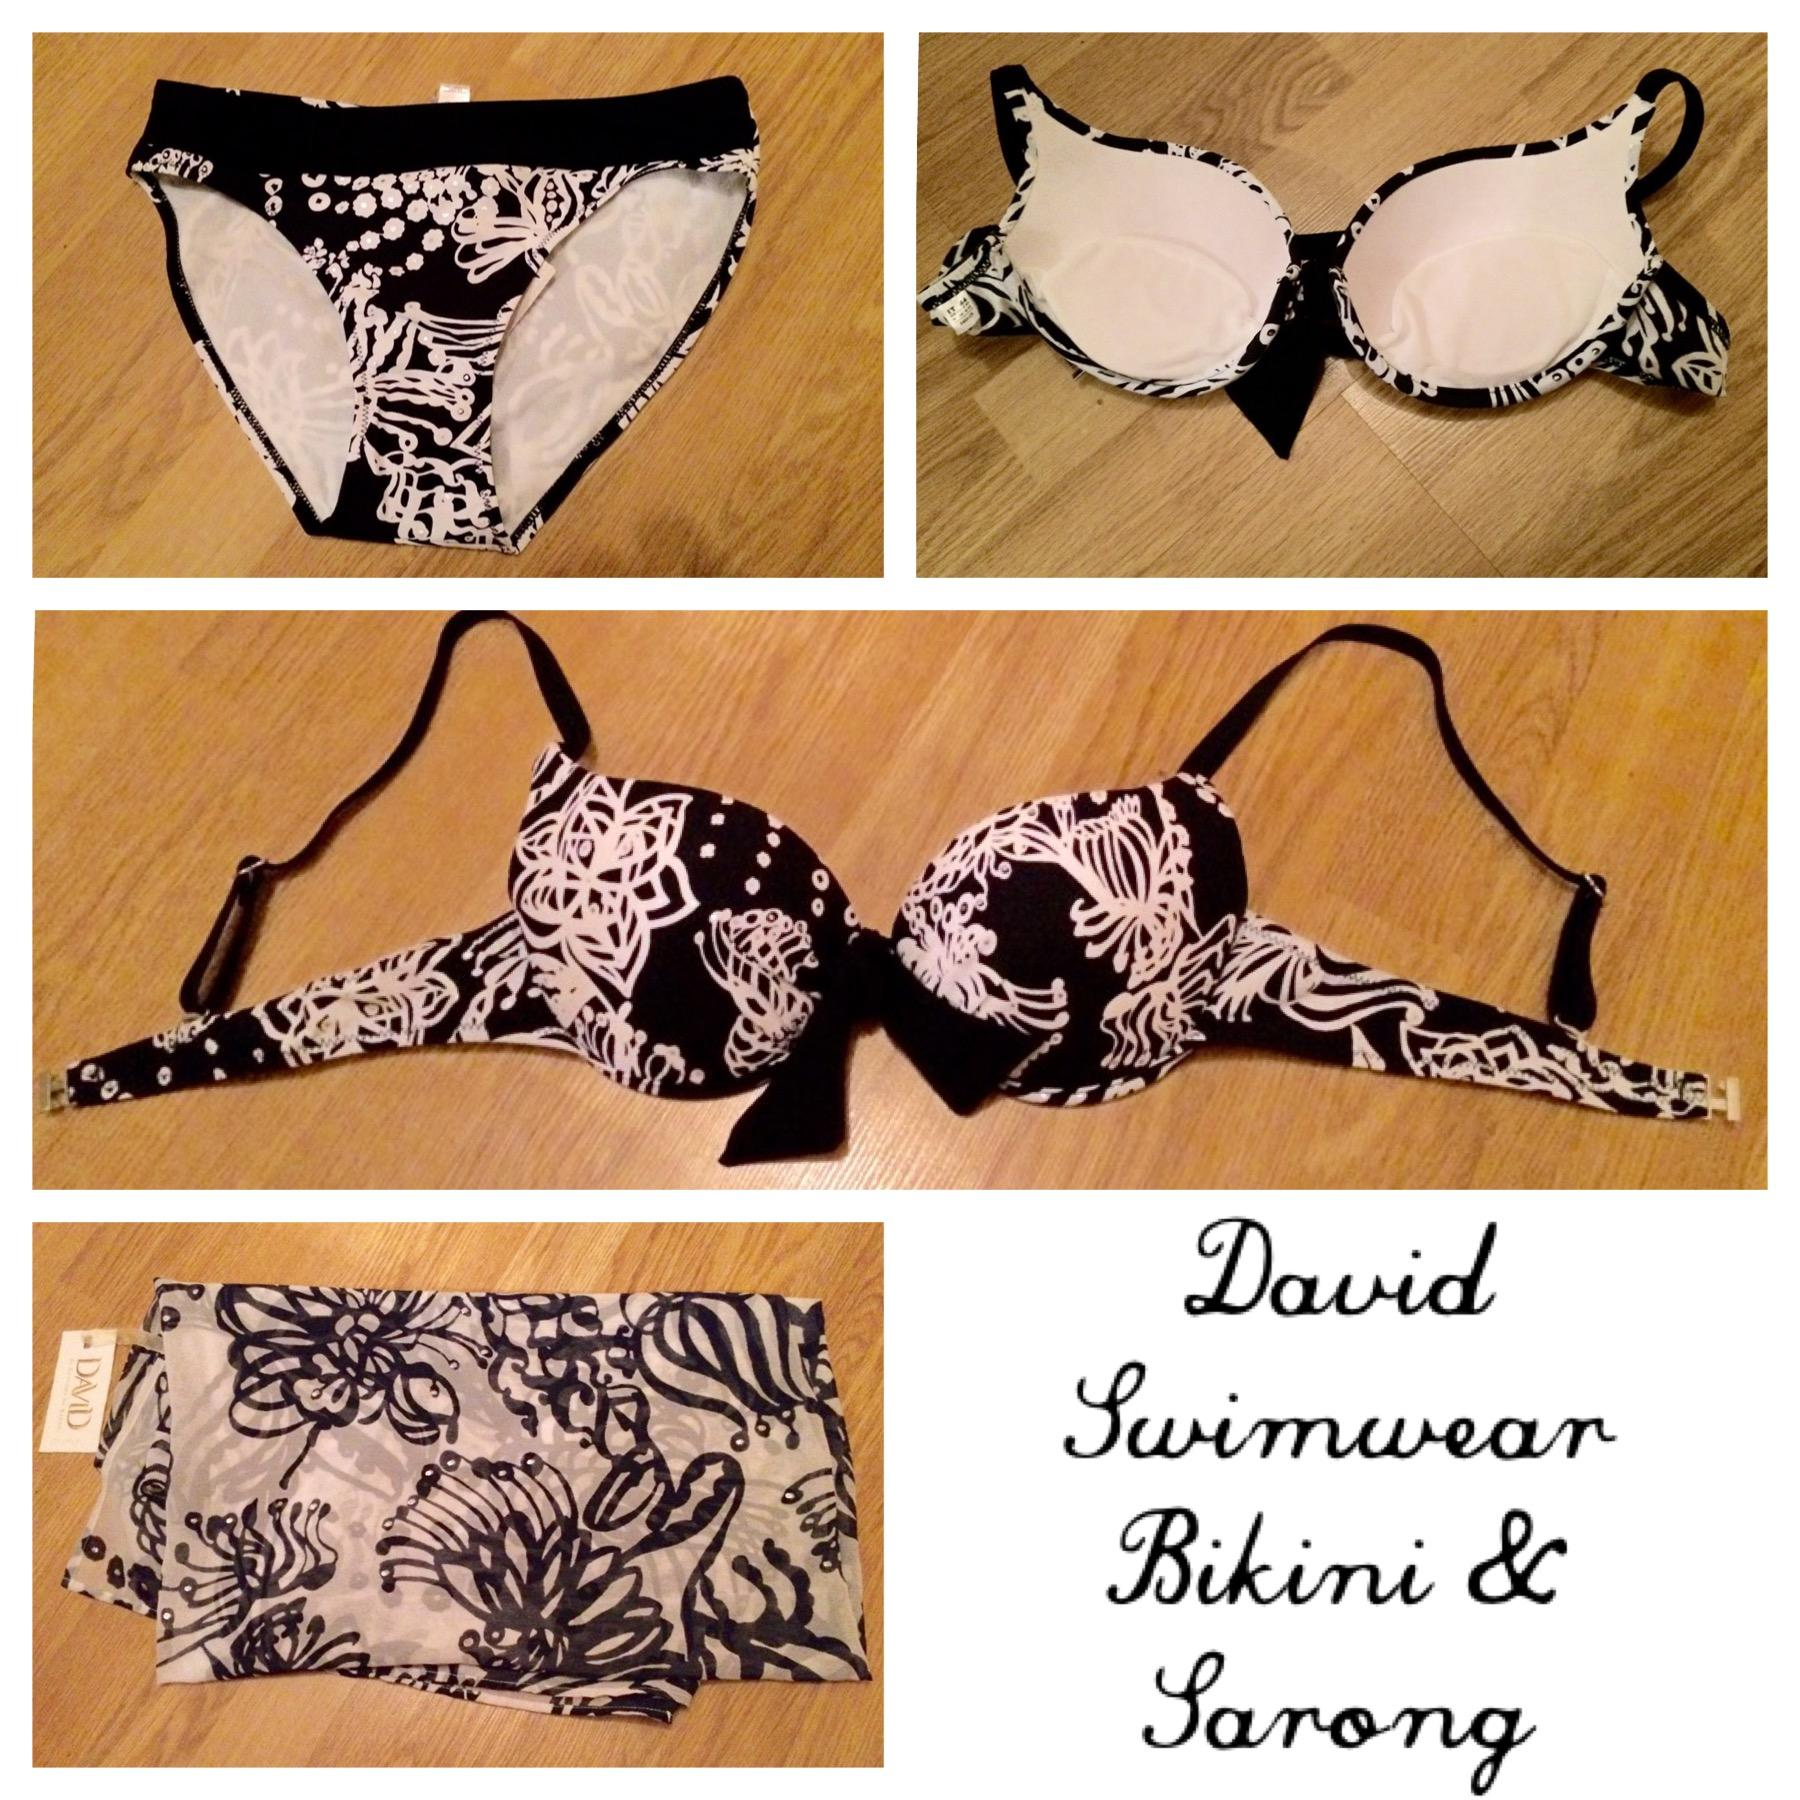 David Swimwear Review - Bikini and Sarong